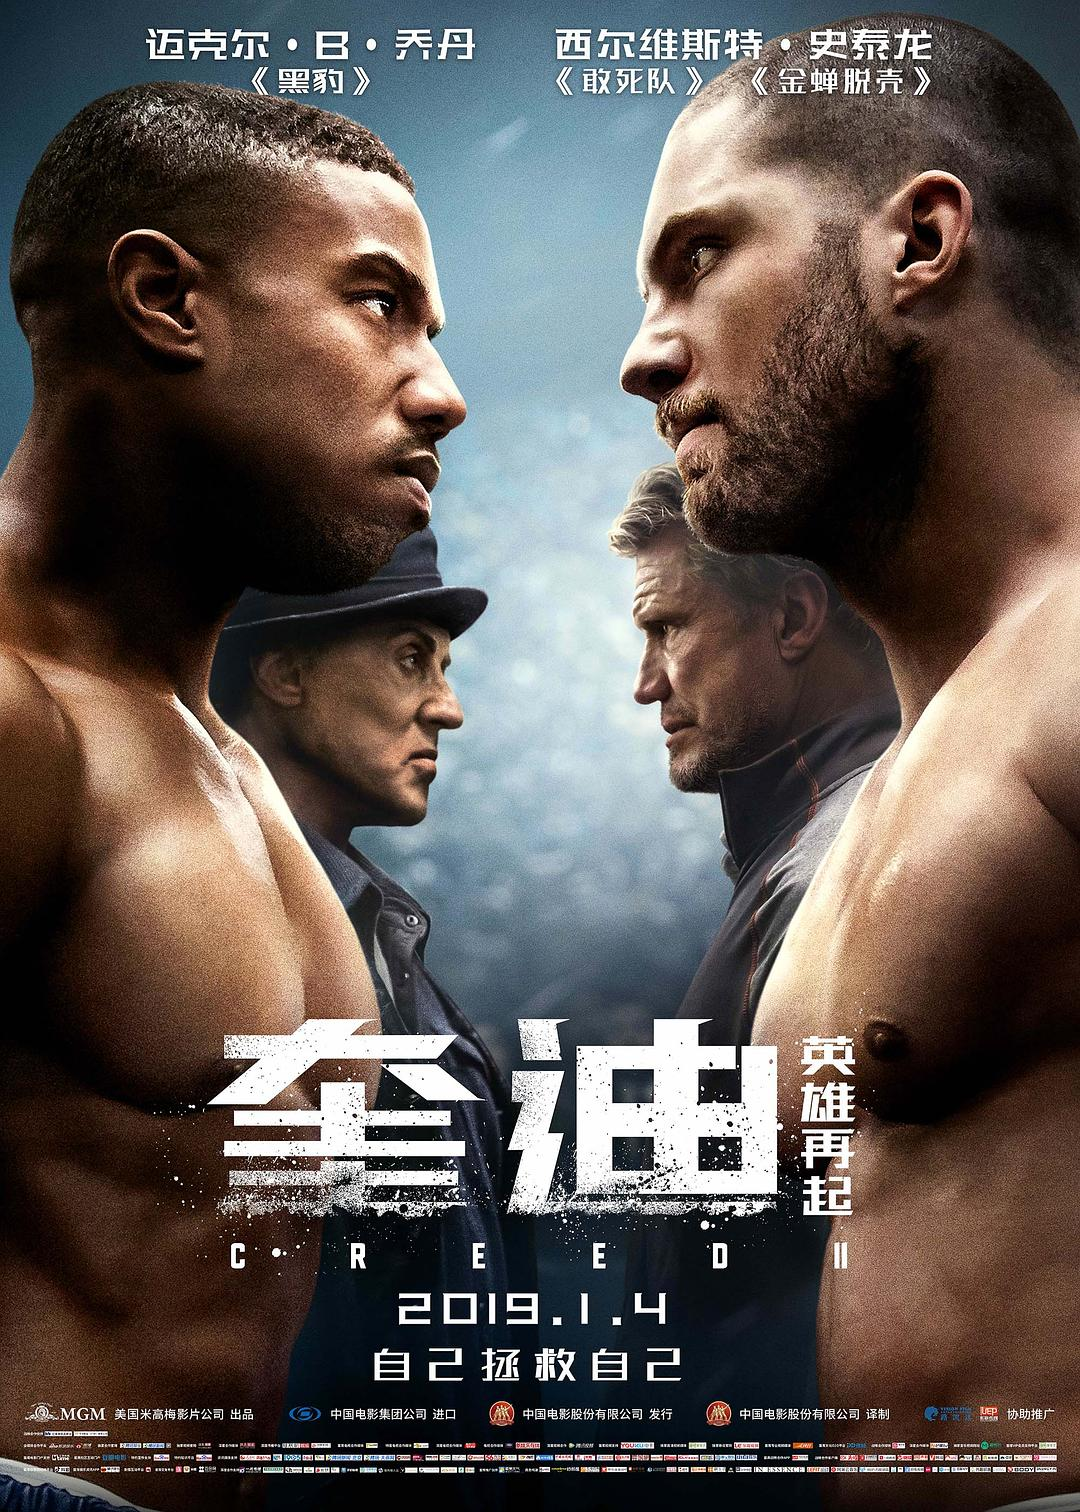 奎迪:英雄再起 Creed II